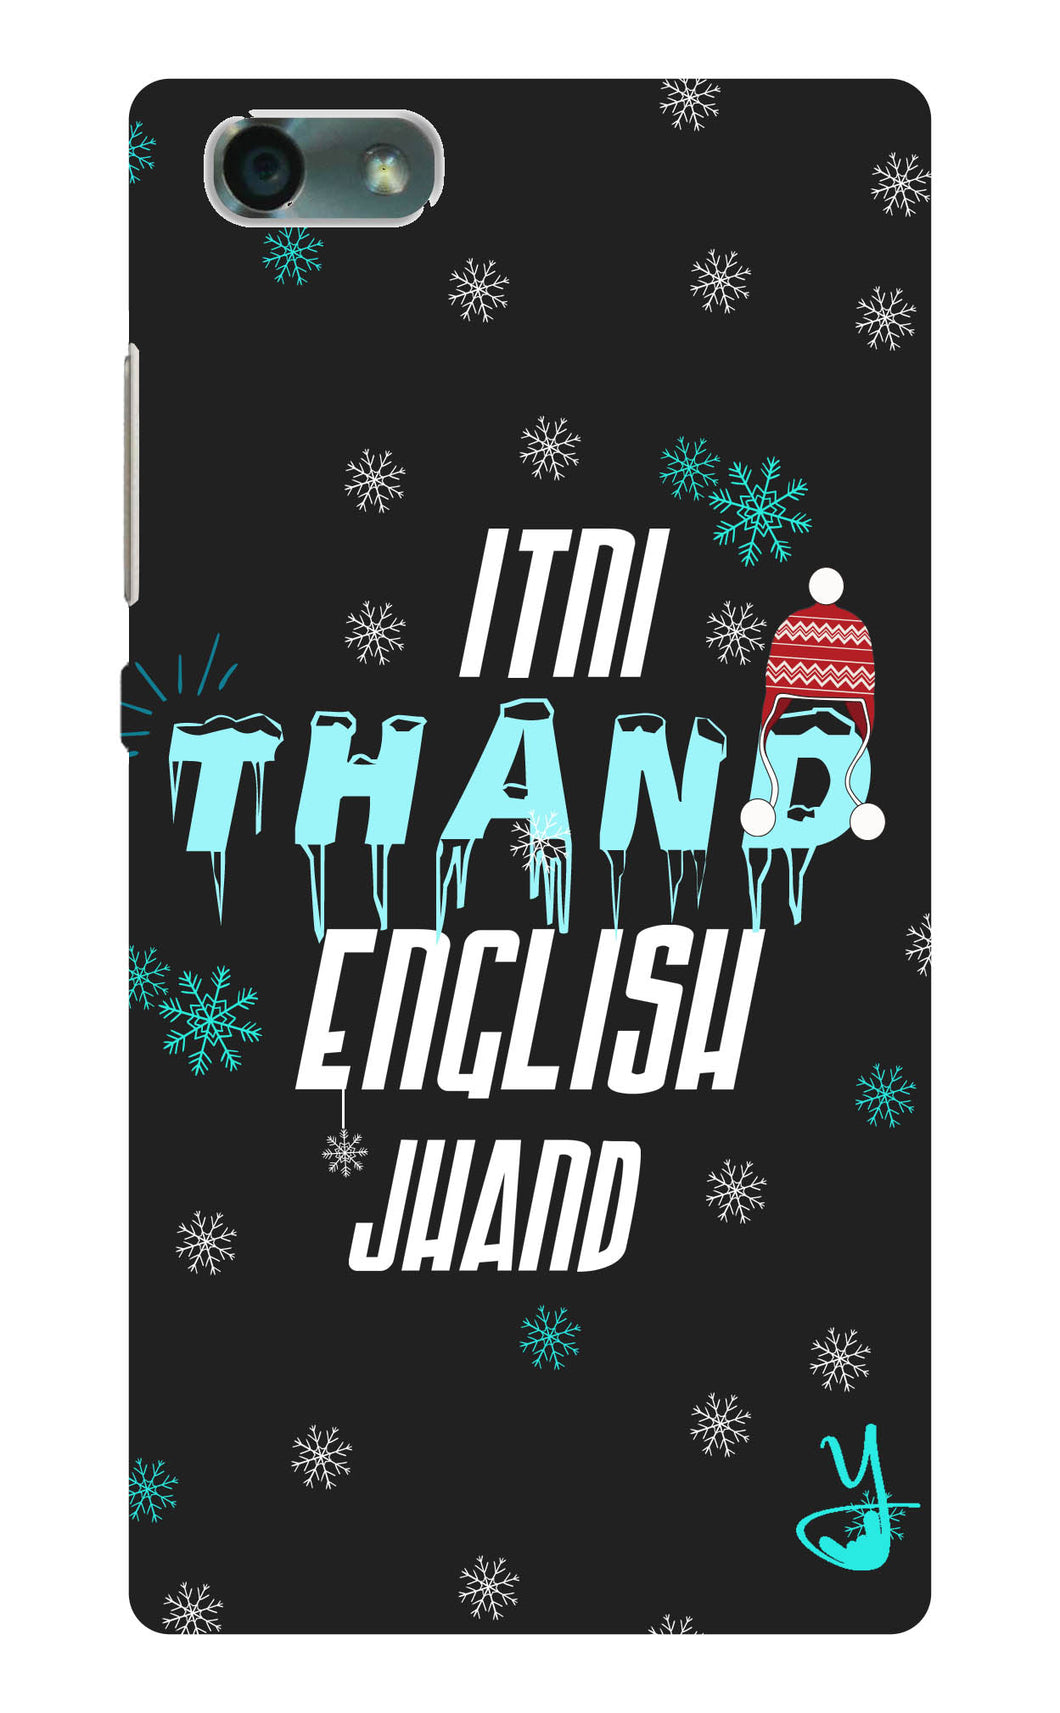 Itni Thand edition for Huawei Honor 4x